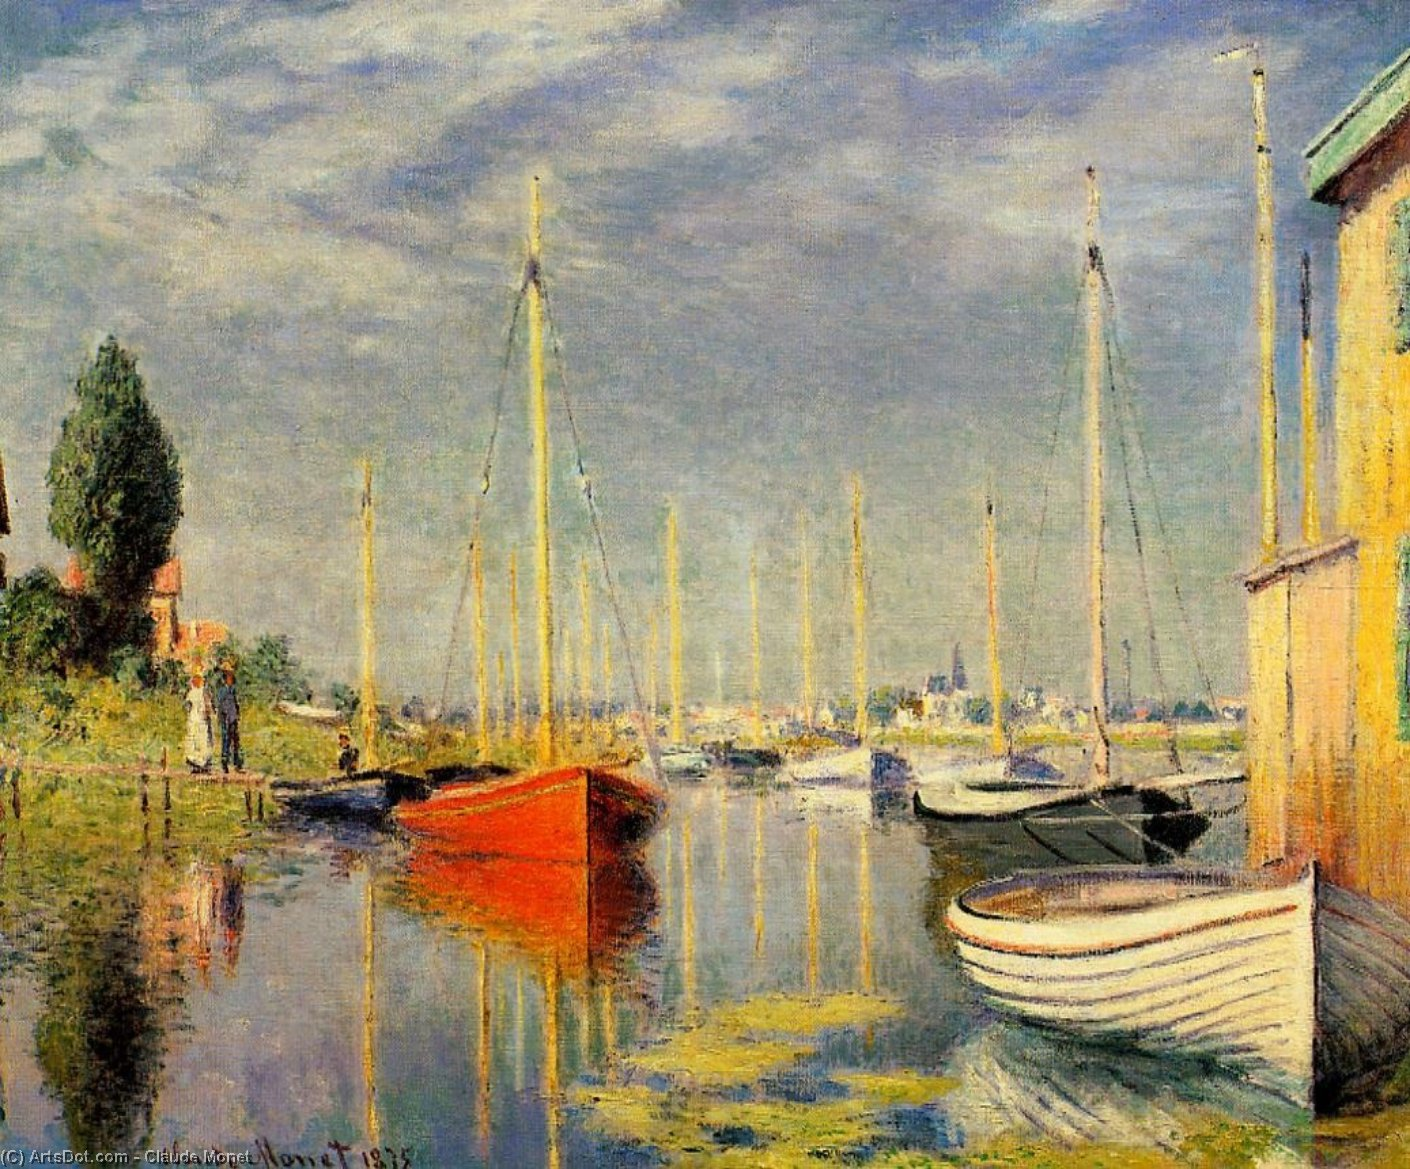 Wikioo.org - The Encyclopedia of Fine Arts - Painting, Artwork by Claude Monet - Yachts at Argenteuil